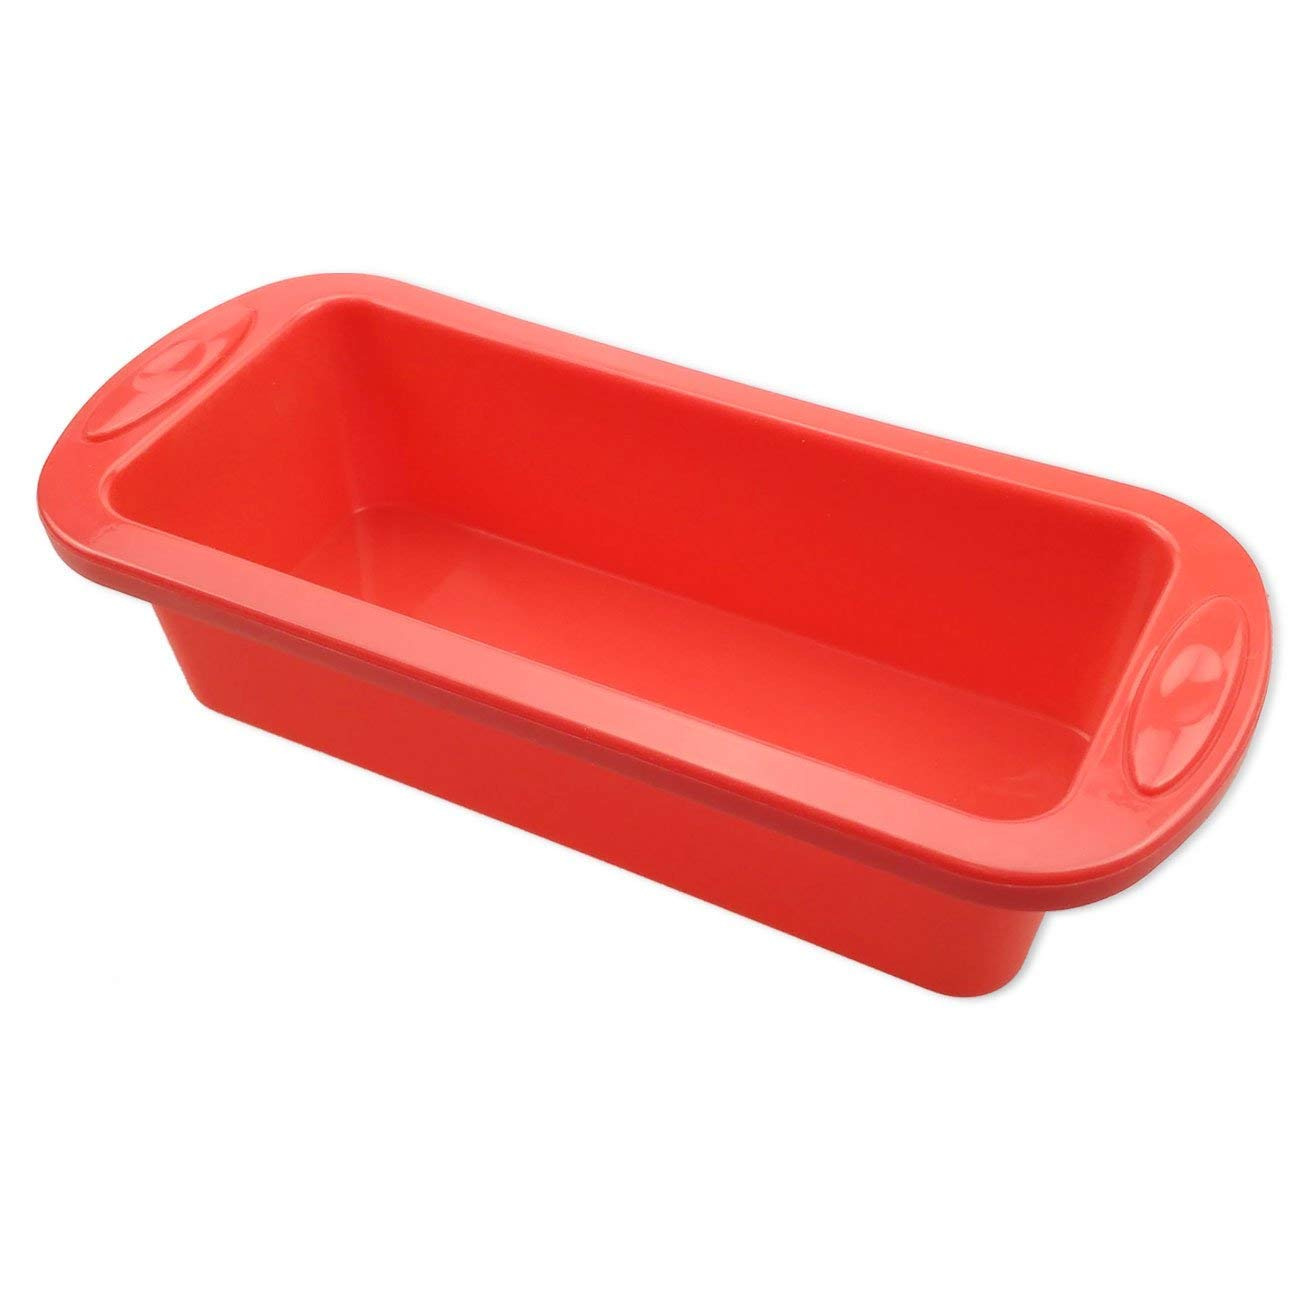 "Bread Loaf Pan, 8.9"" x 3.7"" SILIVO Silicone Cake Pan Non-Stick Baking Mould Perfect for Cake Microwave Dishwasher Safe"